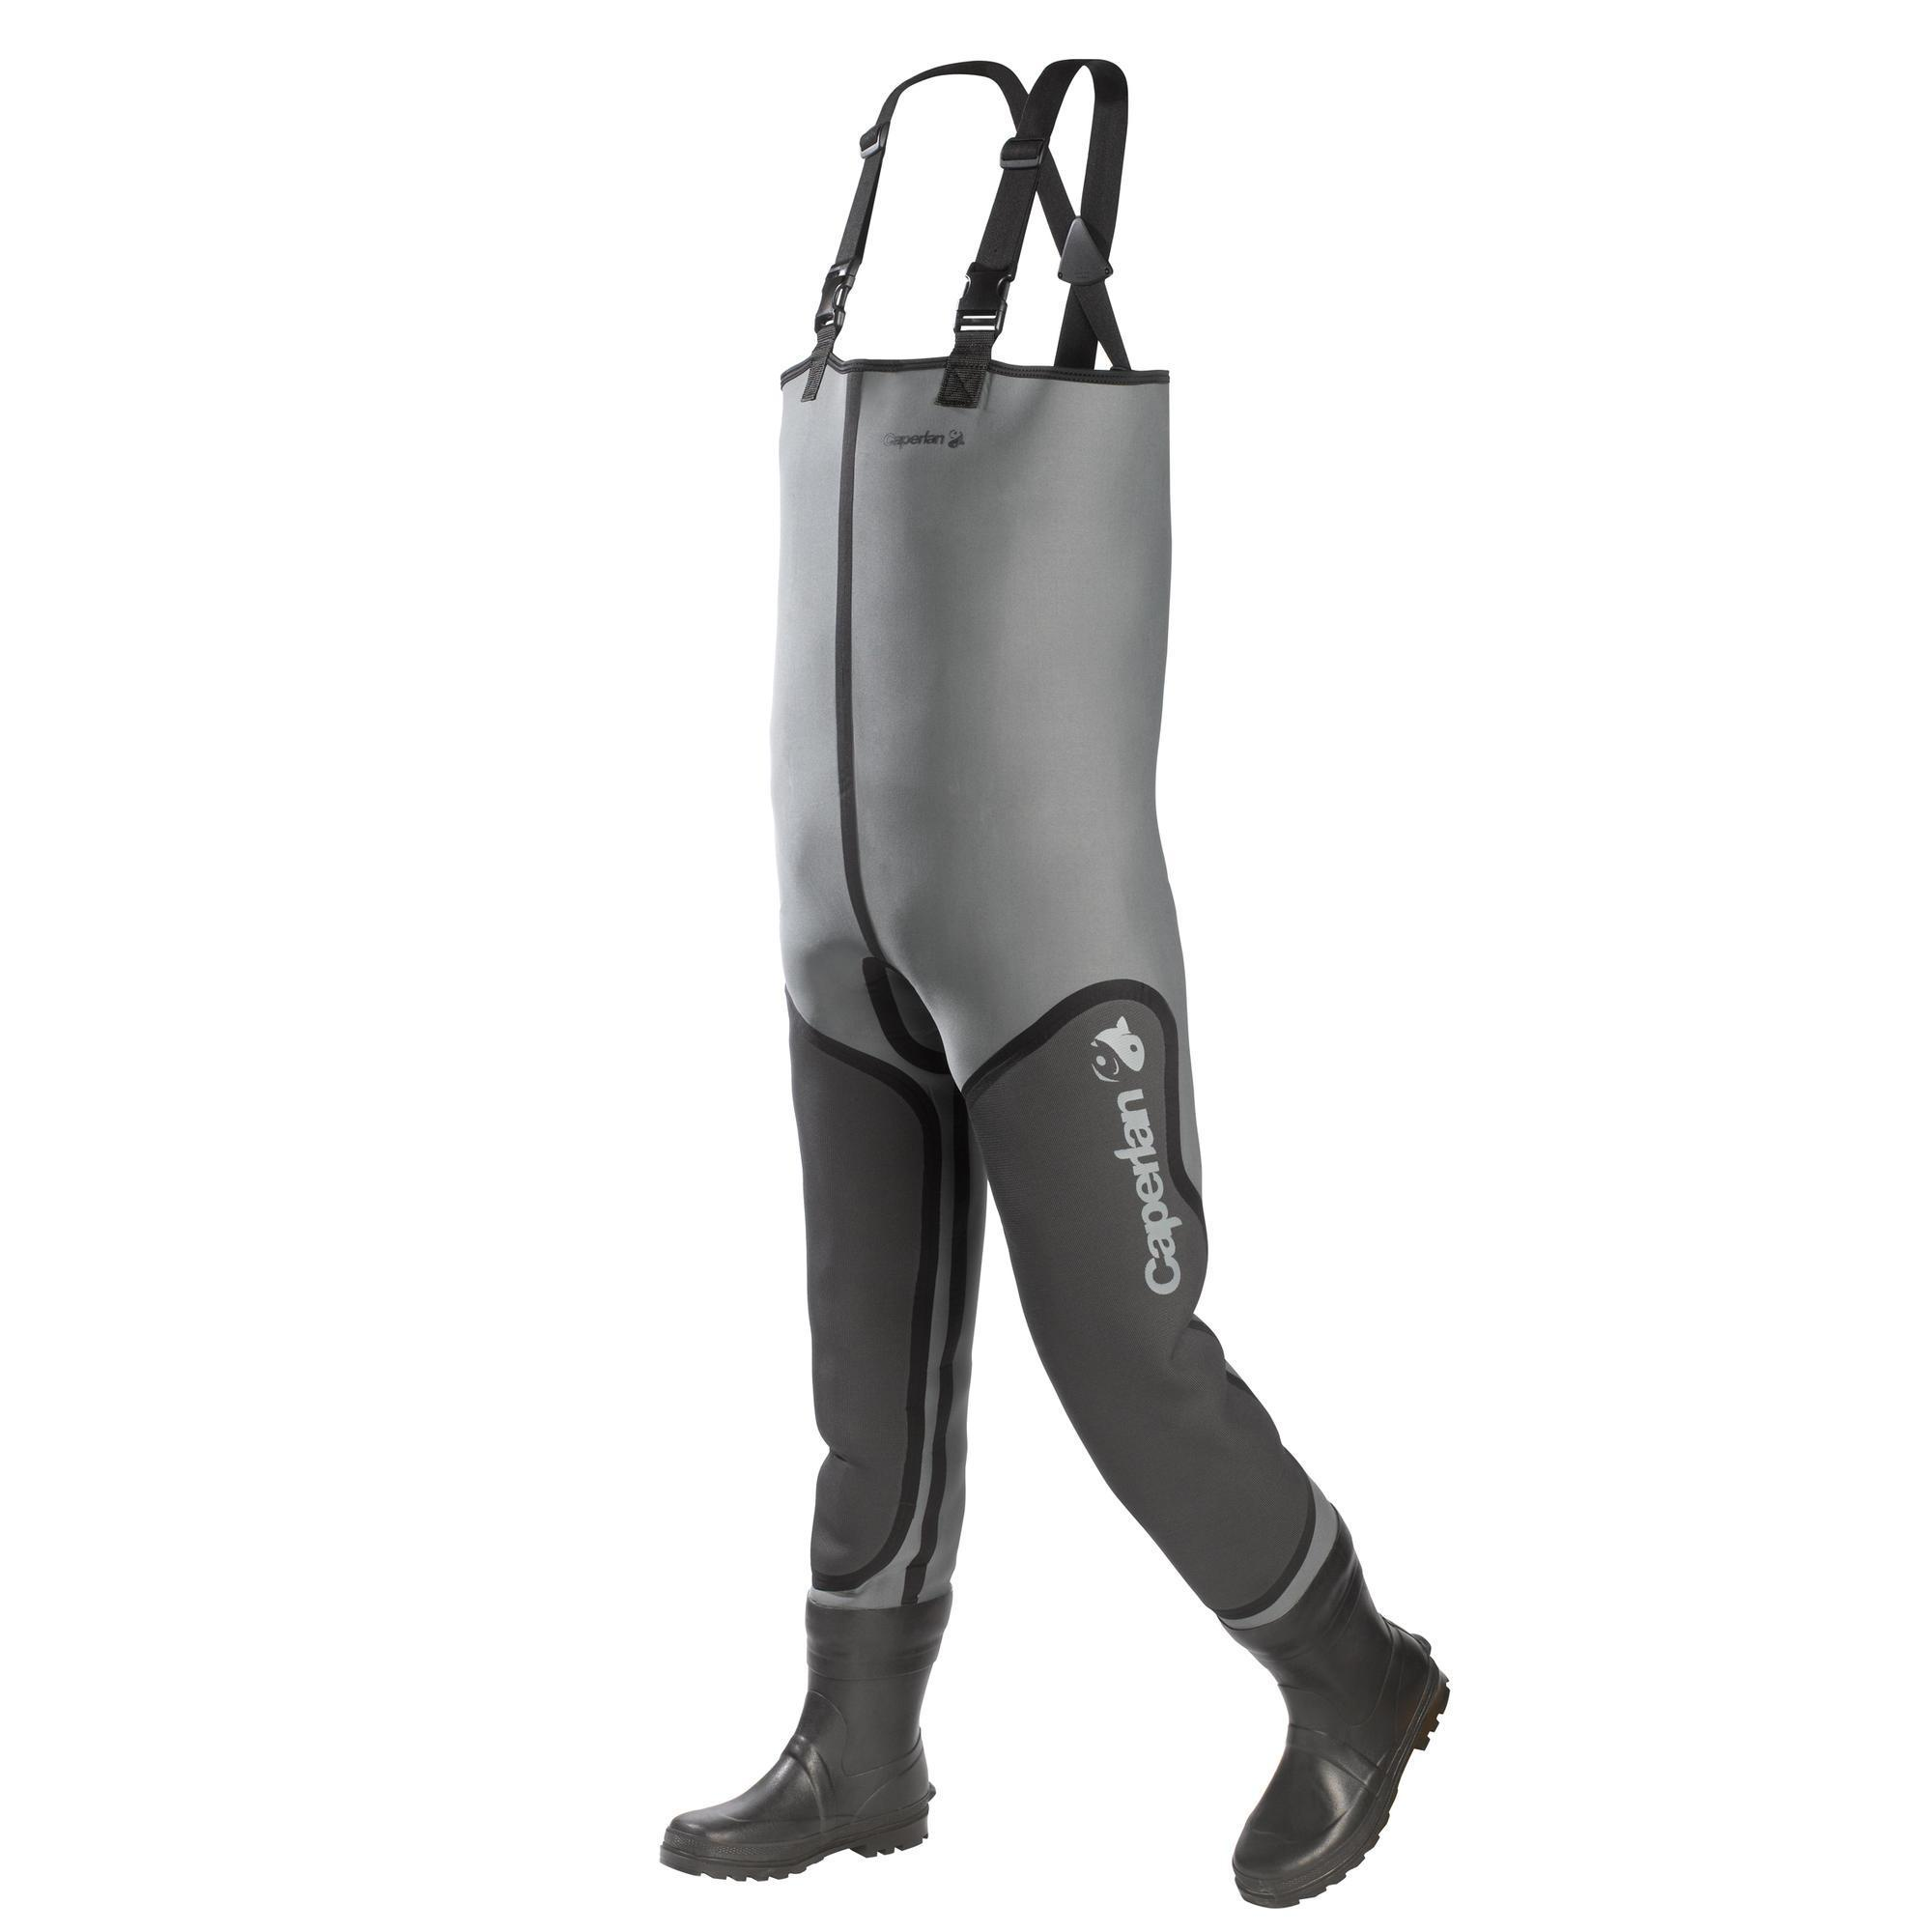 Pêche Waders Decathlon 3mm Thermo Caperlan pzw1qz